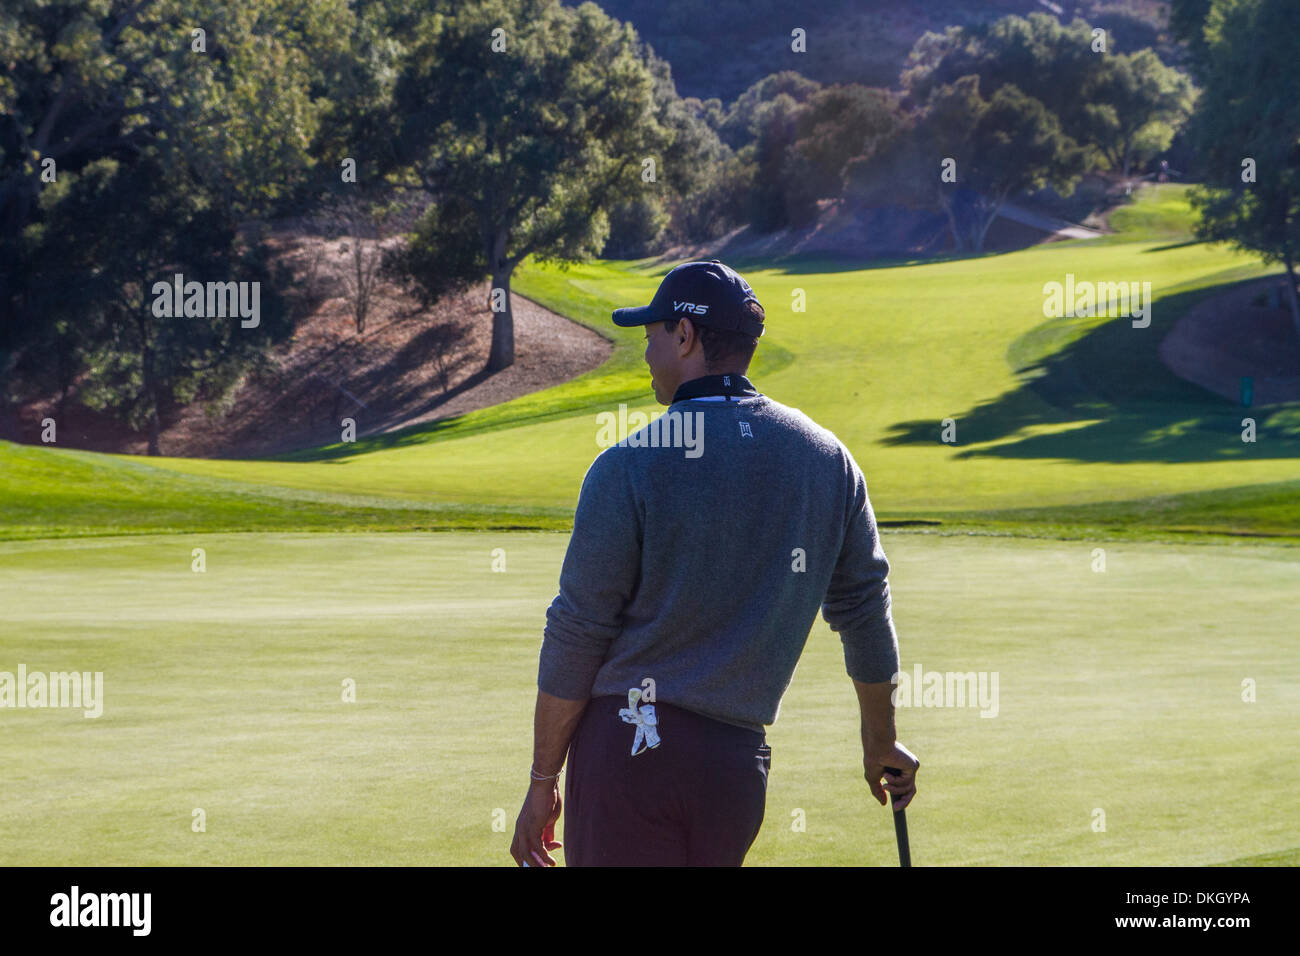 Tiger Woods at the 2013 Northwestern Mutual Challenge at Sherwood Country Club in Thousand Oaks California Dec 4 2013 - Stock Image